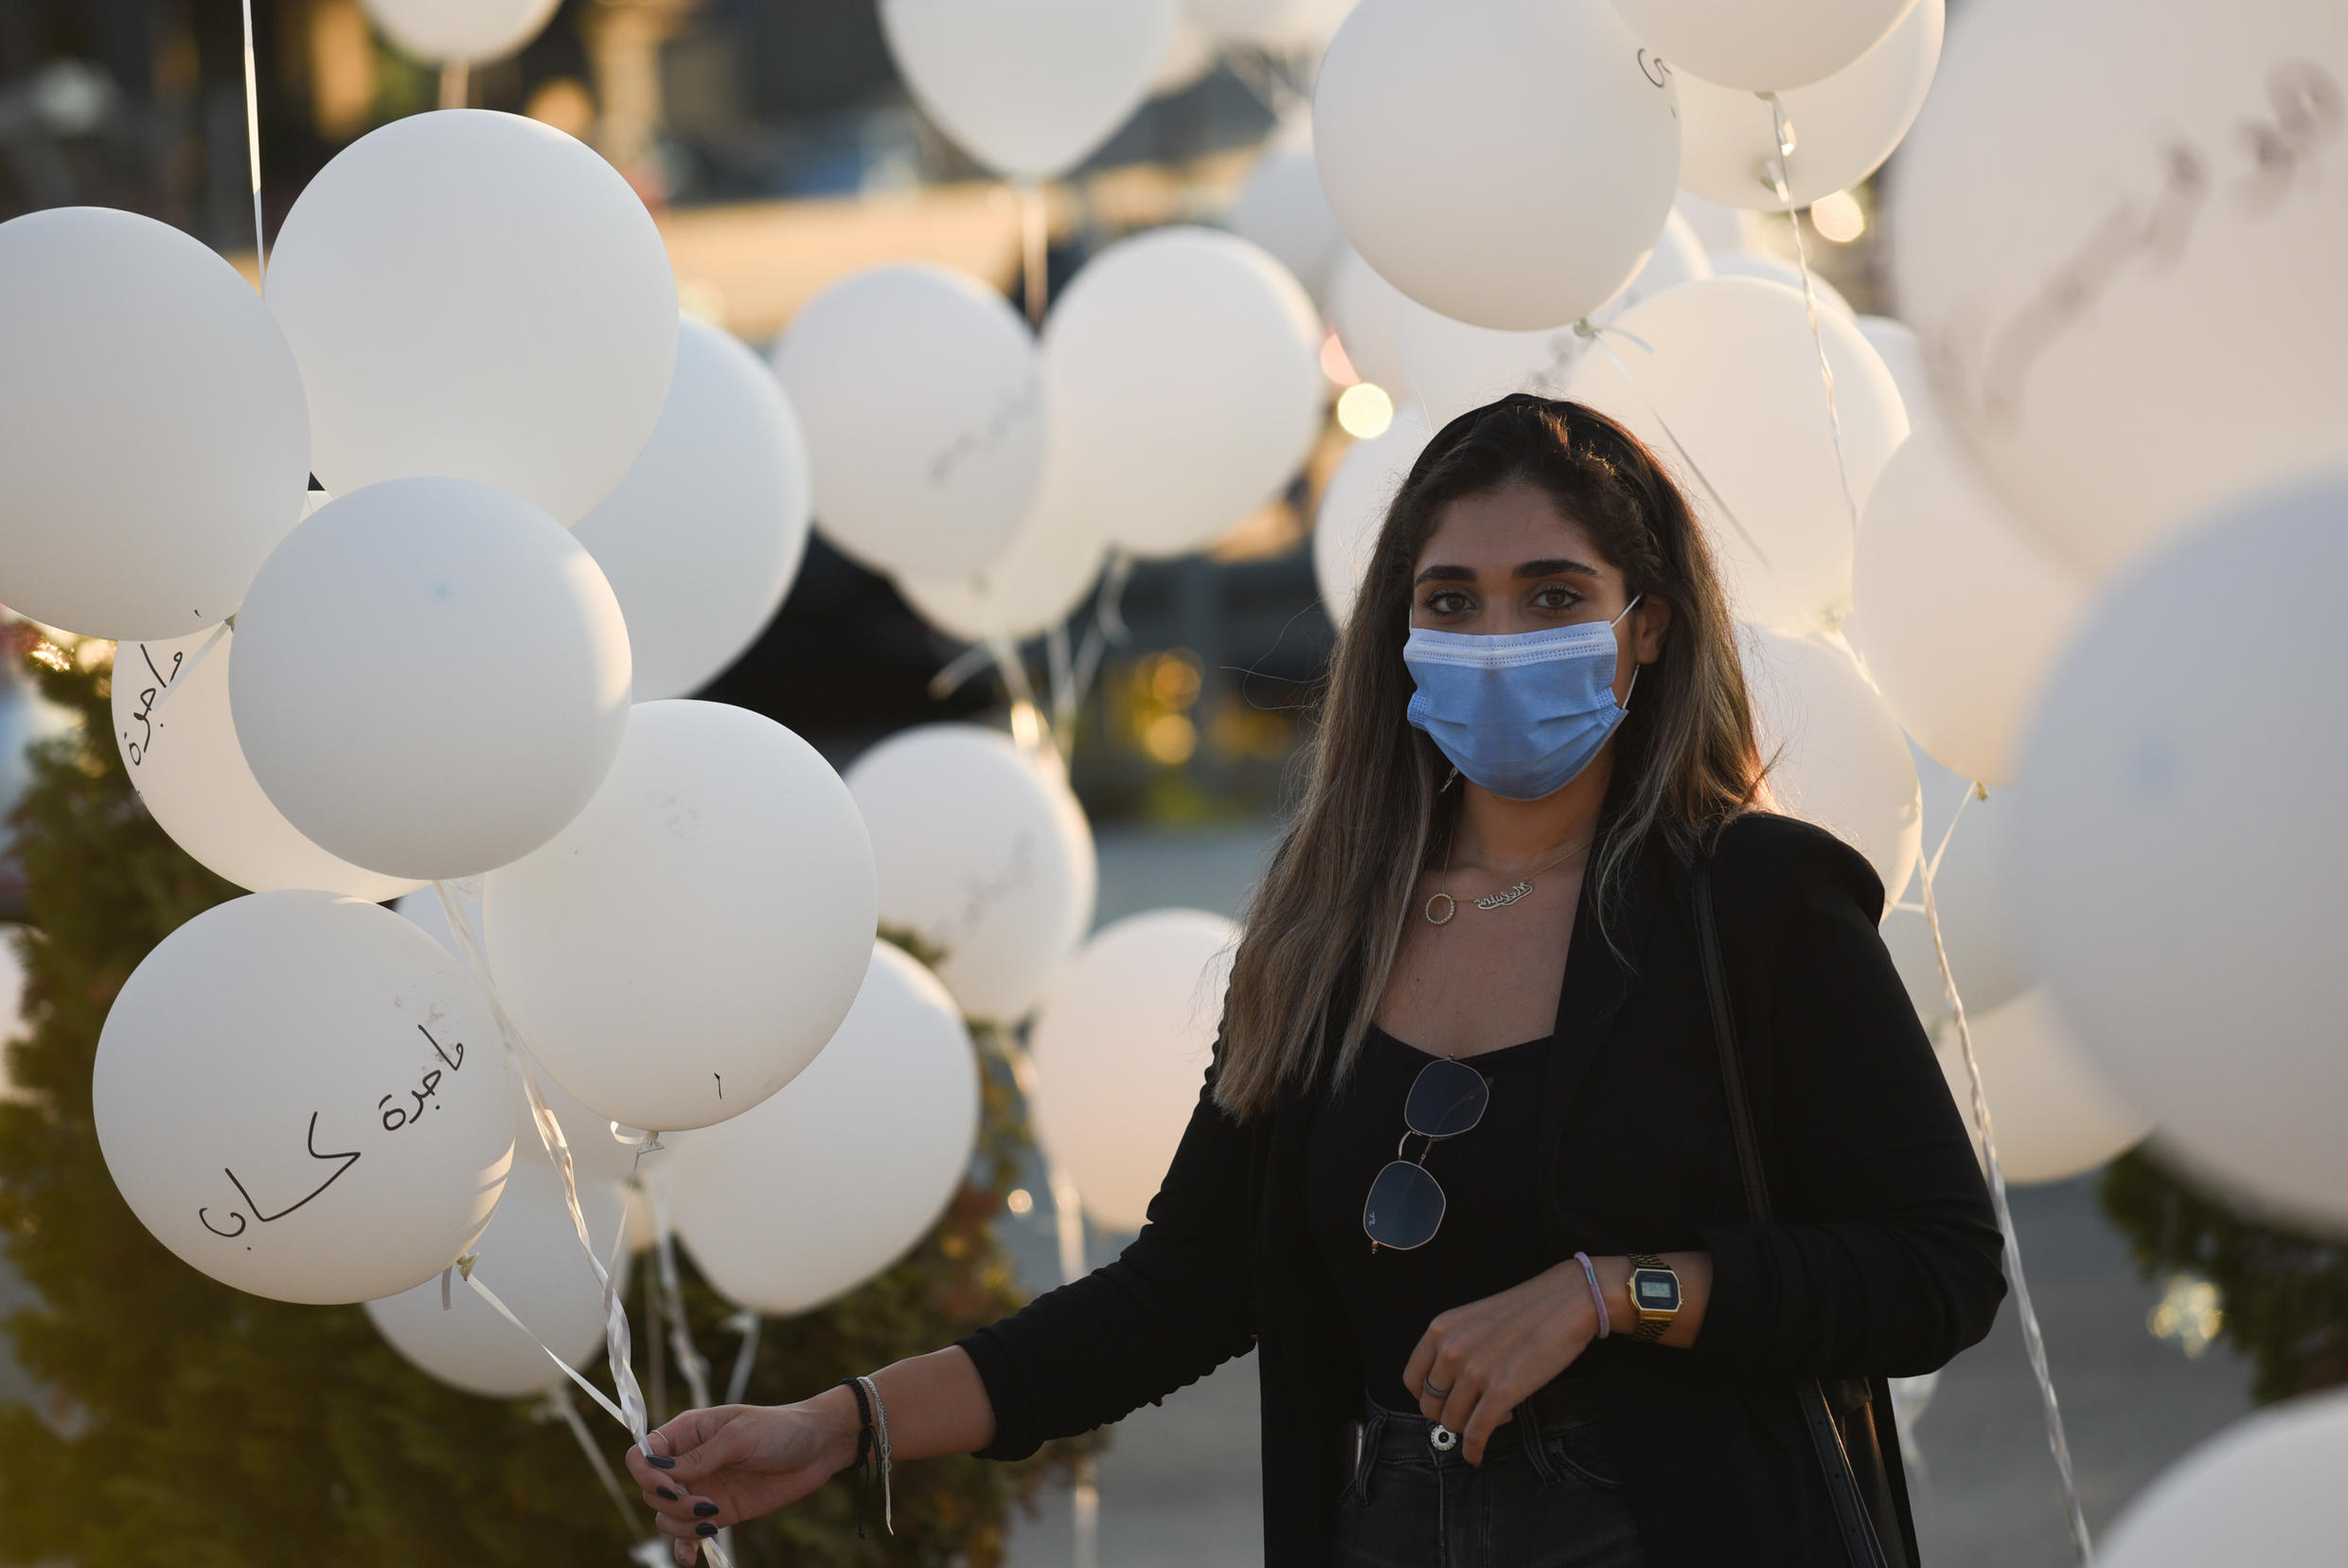 Melvine Kassab holds balloons on which she wrote the name of her mother ,Magida Kassab, who was killed during the Beirut port blast. About 200 relatives of victims released balloons at 18h07 on October 4 to mark the exact moment at which the explosion took place two months earlier.